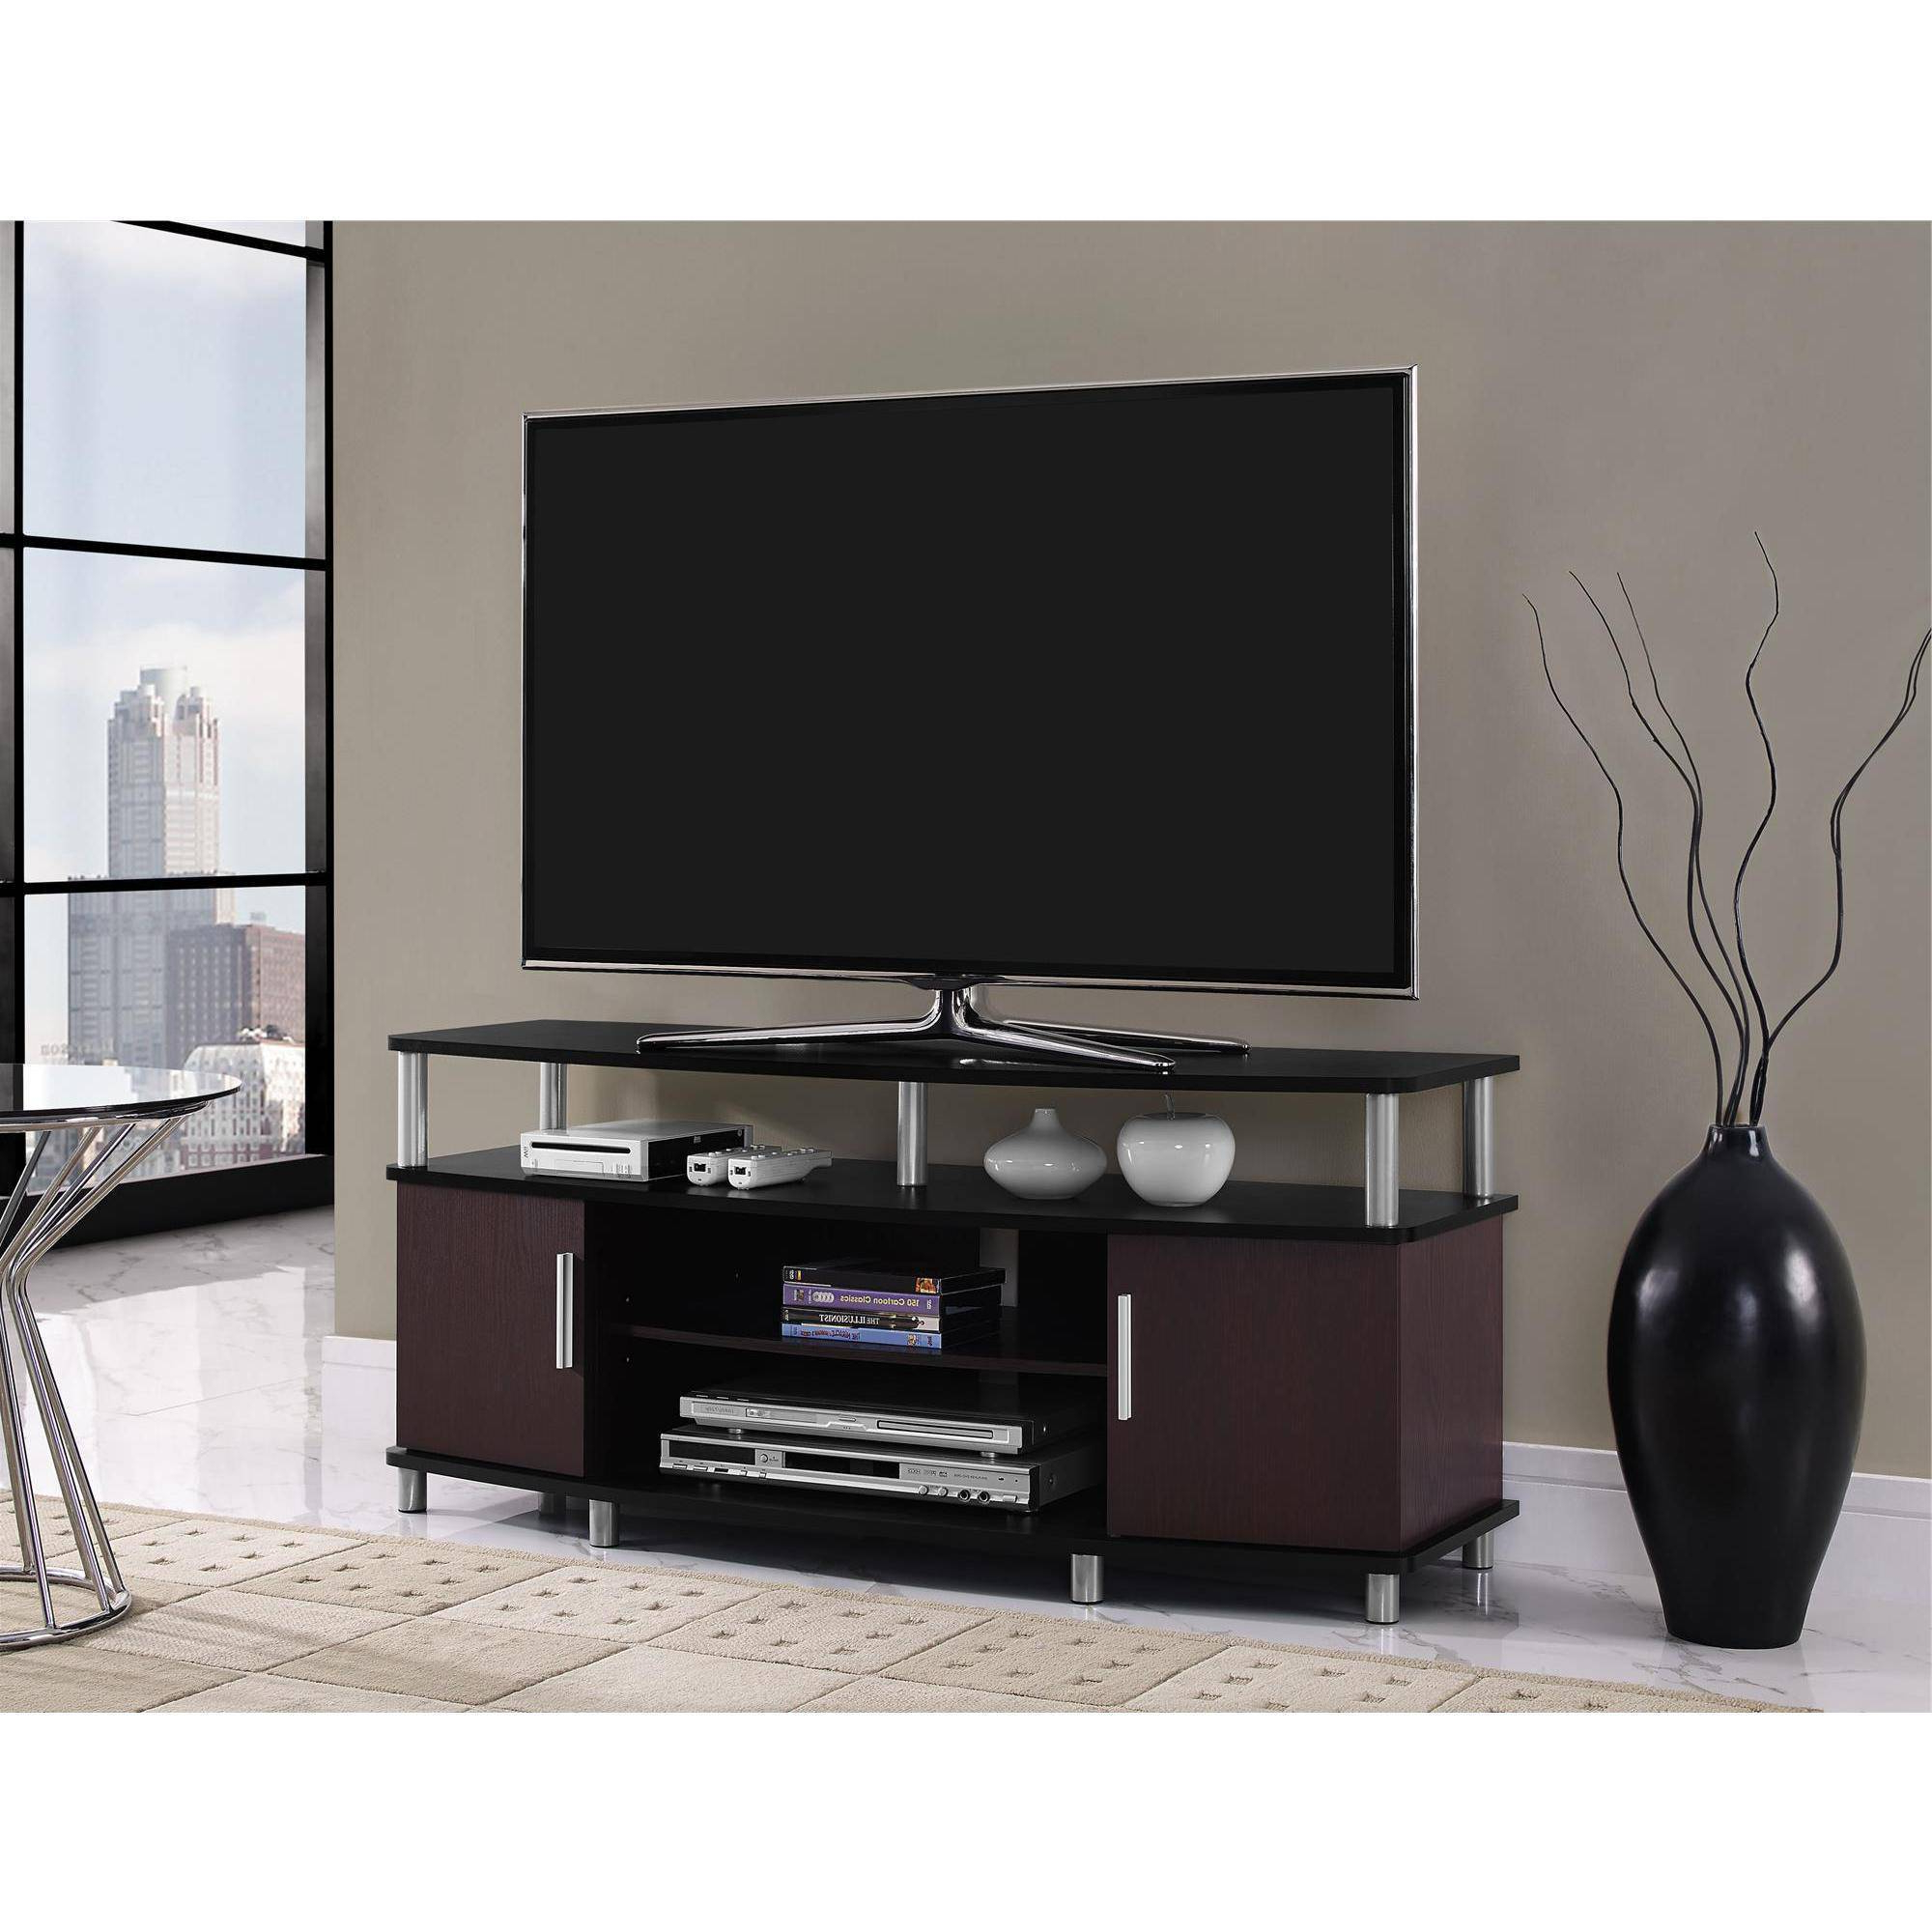 "Cherry Wood Tv Stands With Regard To Popular Carson Tv Stand, For Tvs Up To 50"", Multiple Finishes – Walmart (View 5 of 20)"